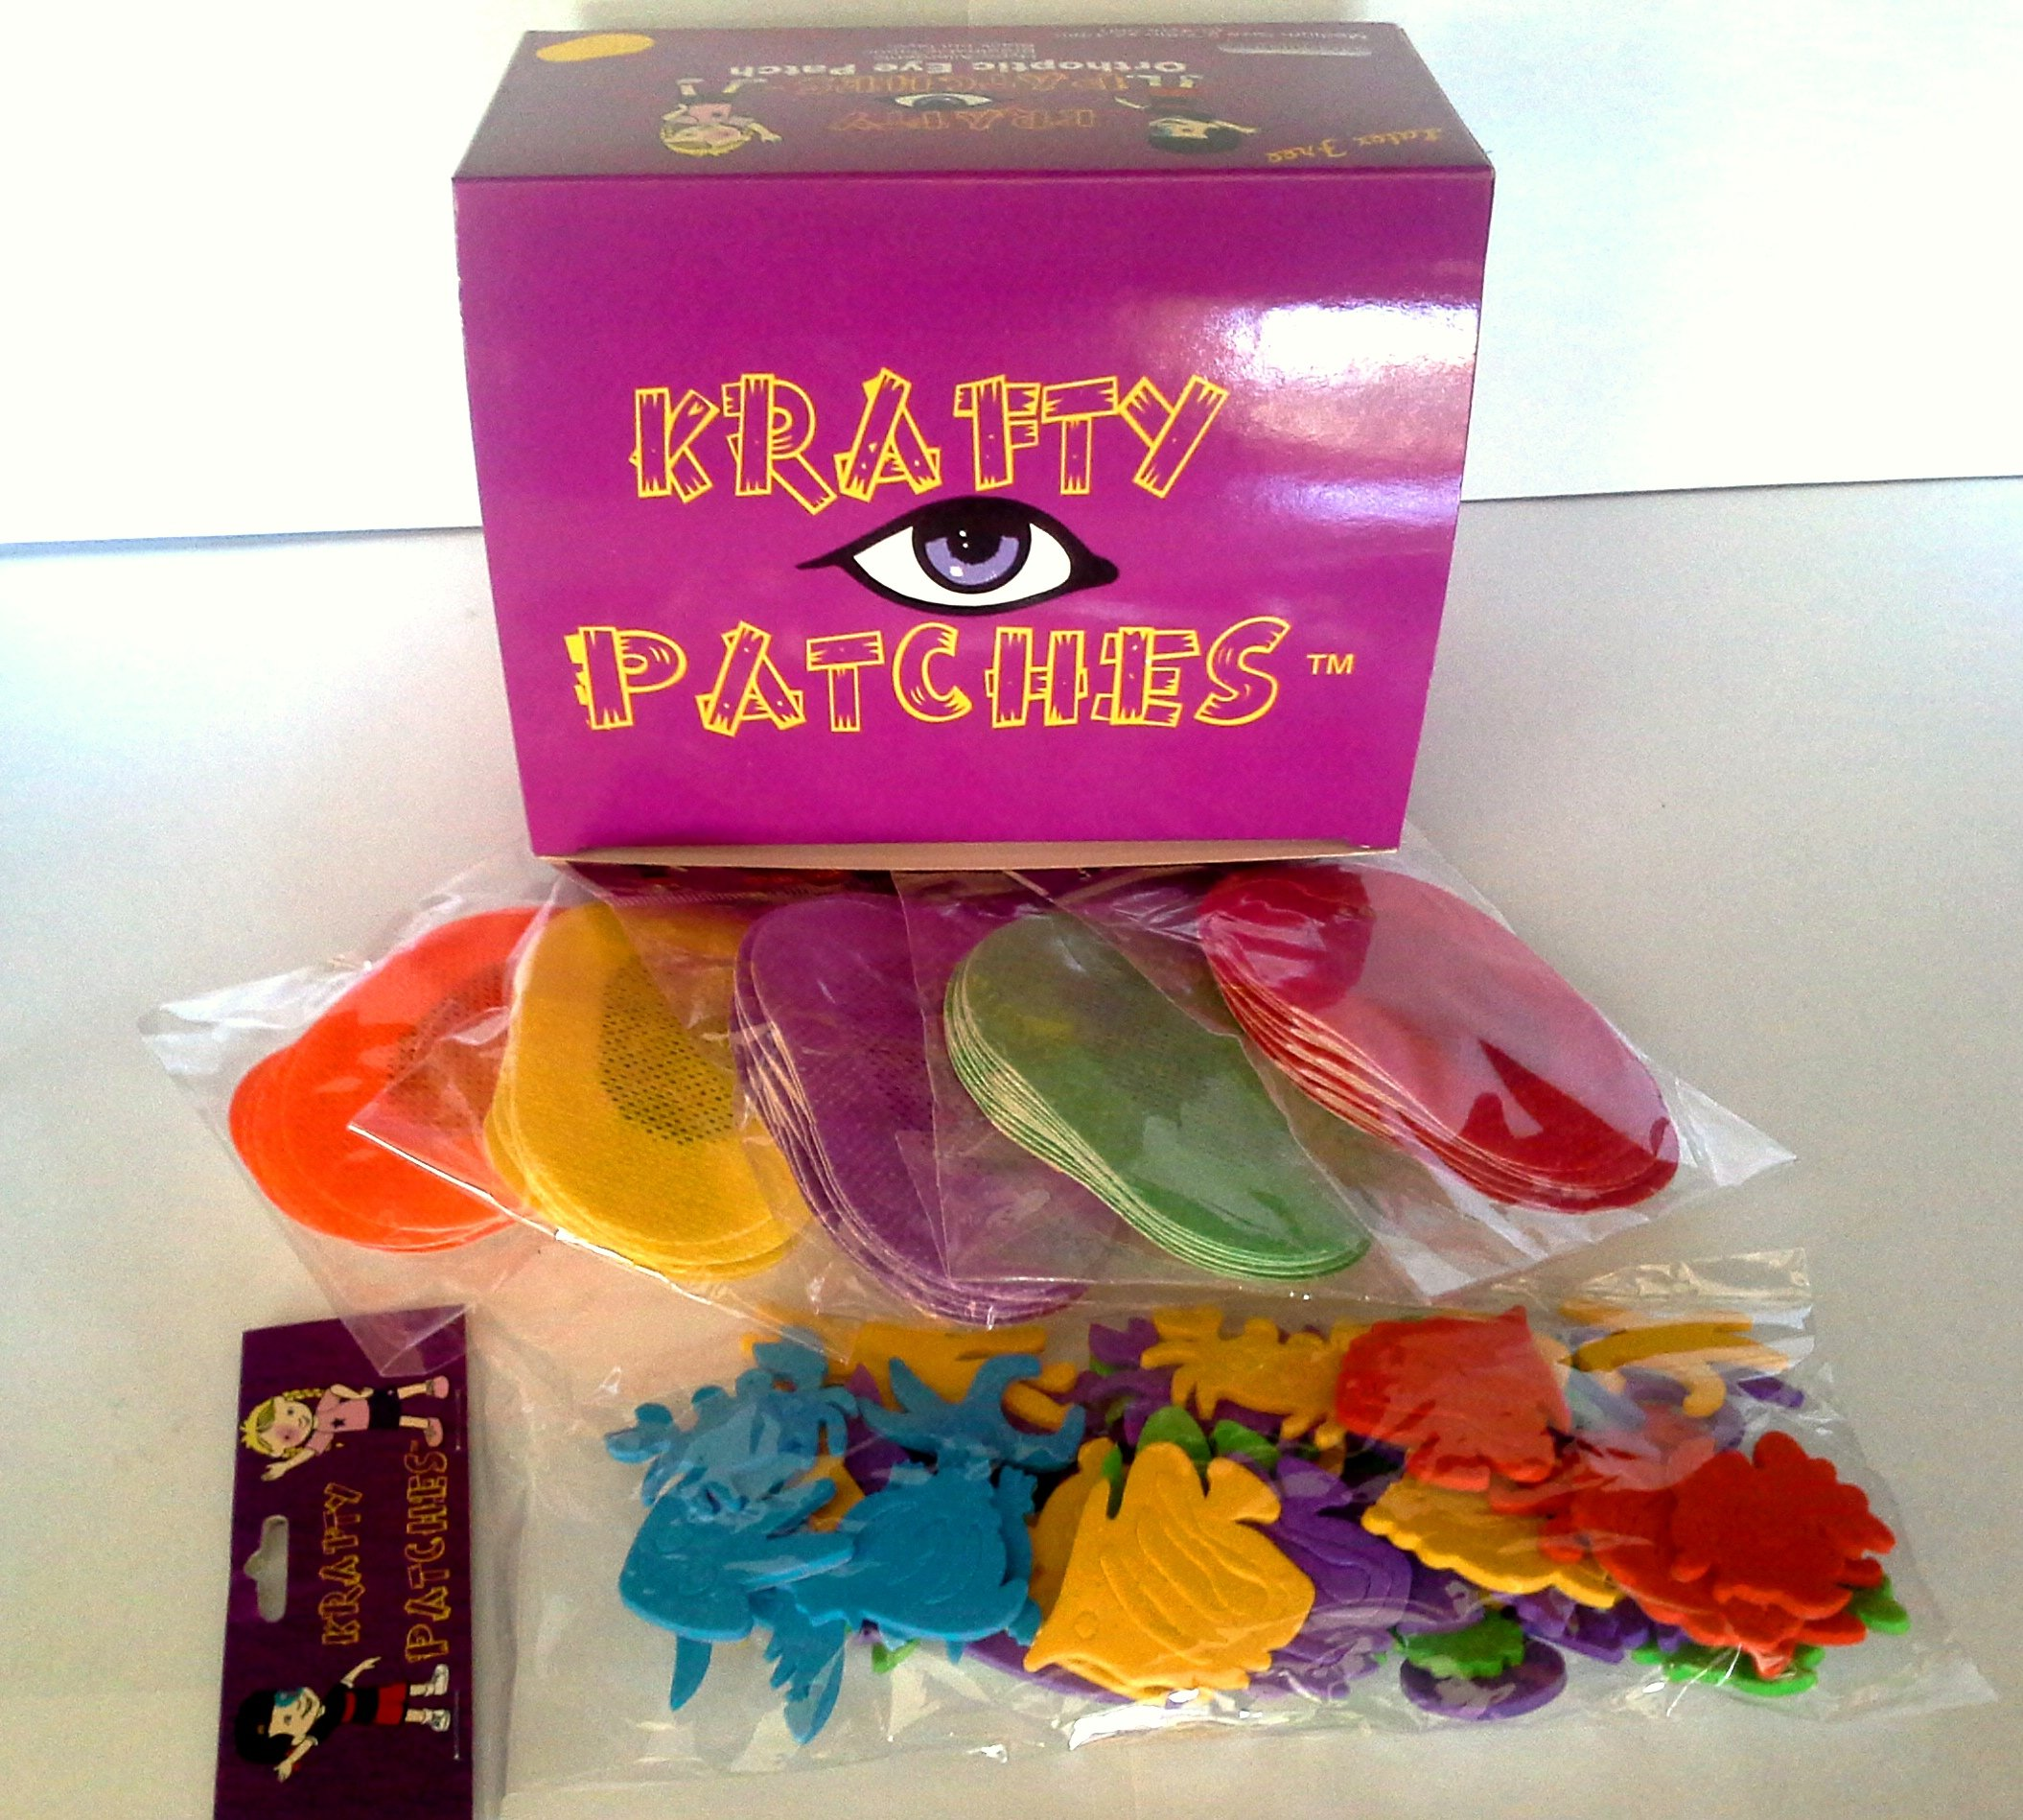 Krafty Eye Patches (Unisex) Medium Size (50 per box & 1 bag foam stickers for ages 0-4yrs old)